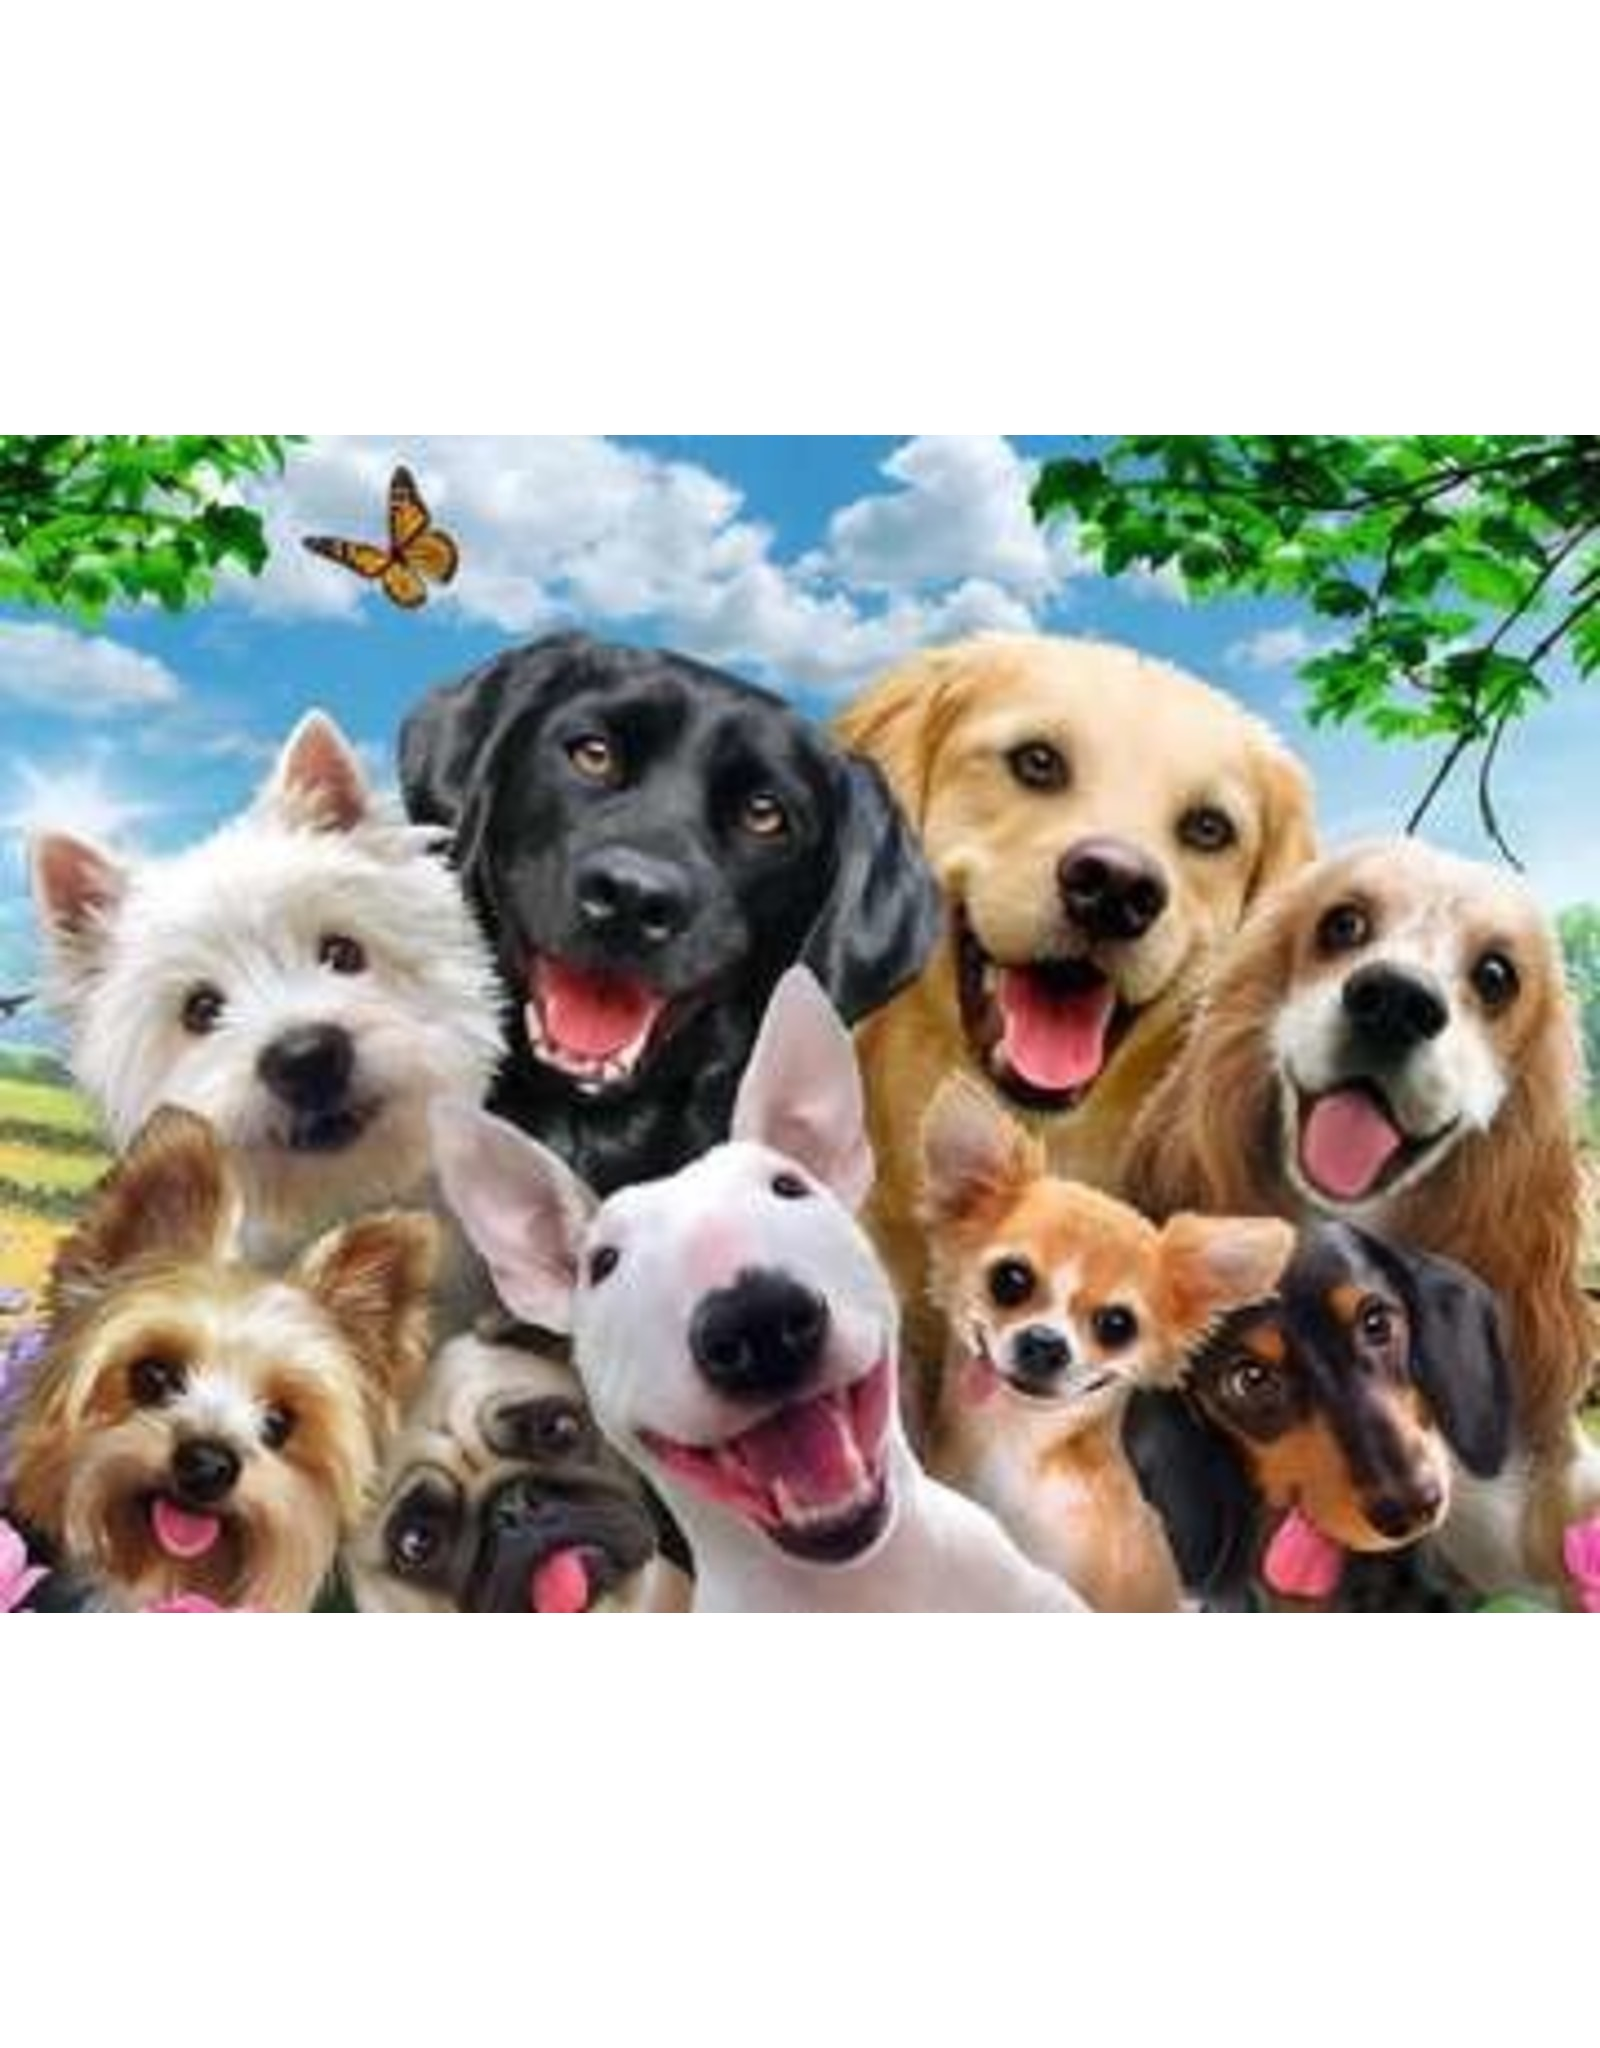 Ravensburger 300 pcs. Delighted Dogs Puzzle